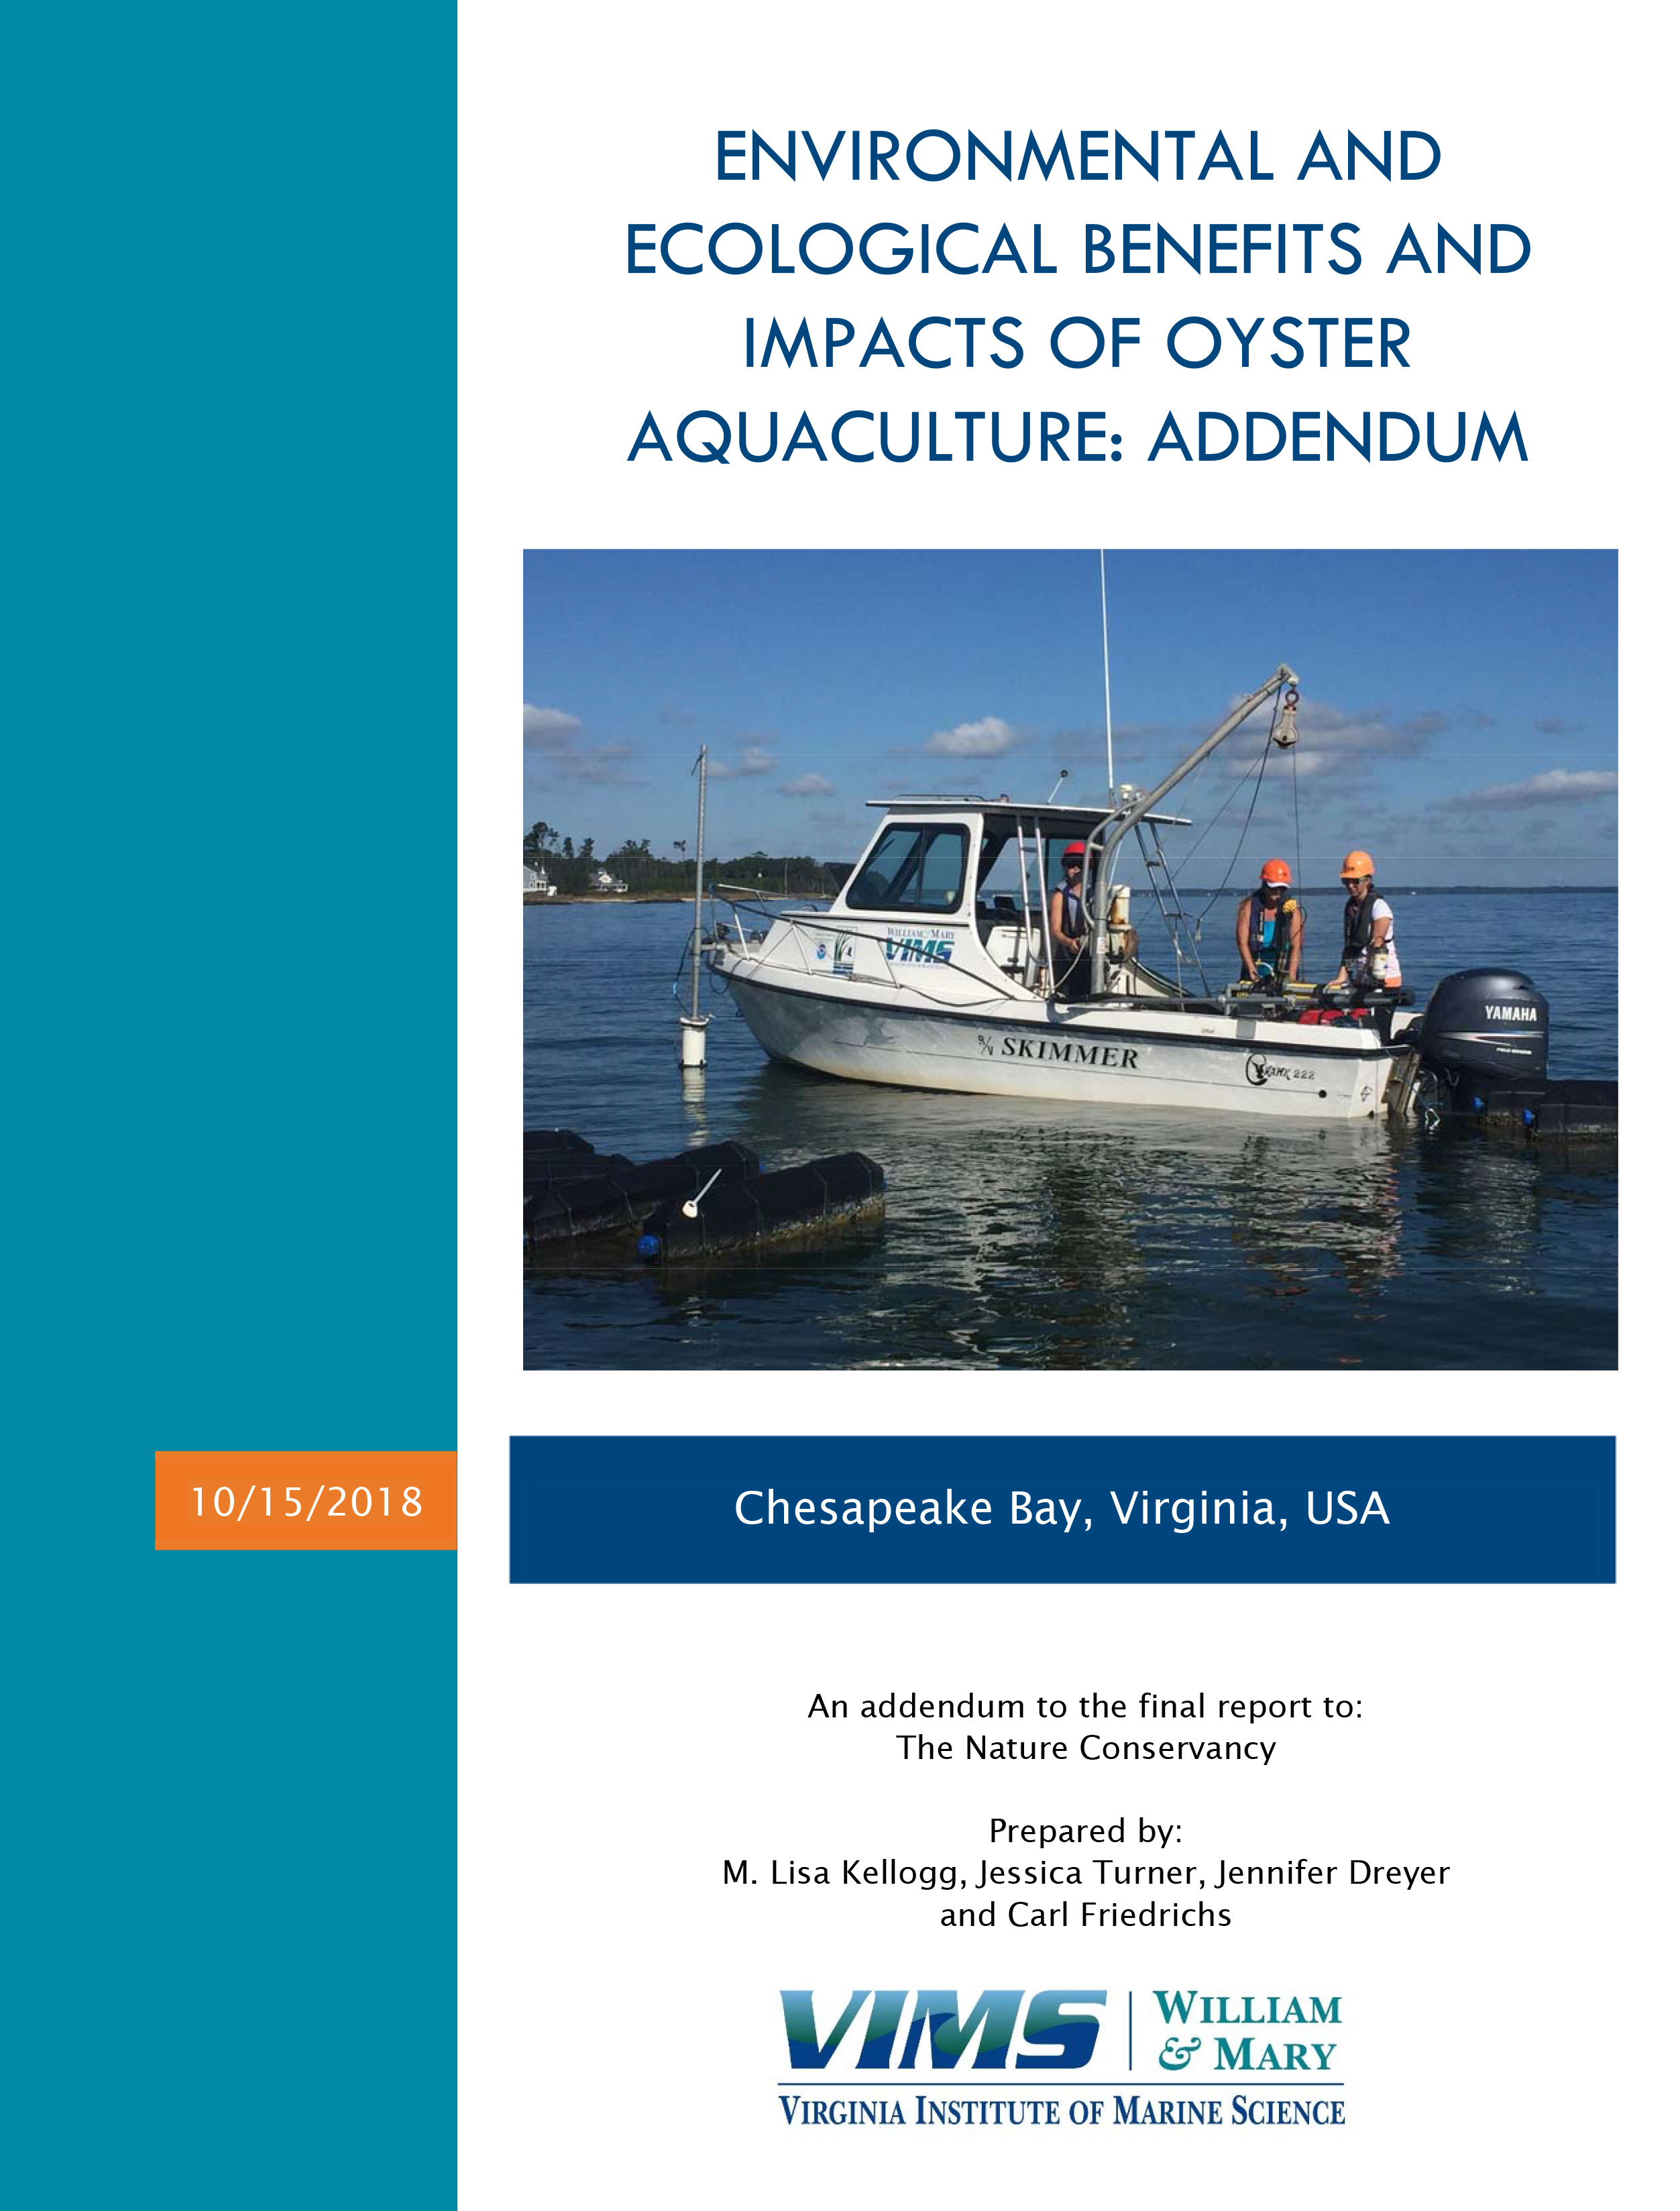 Addendum to final report on the environmental and ecological benefits and impacts of oyster aquaculture.